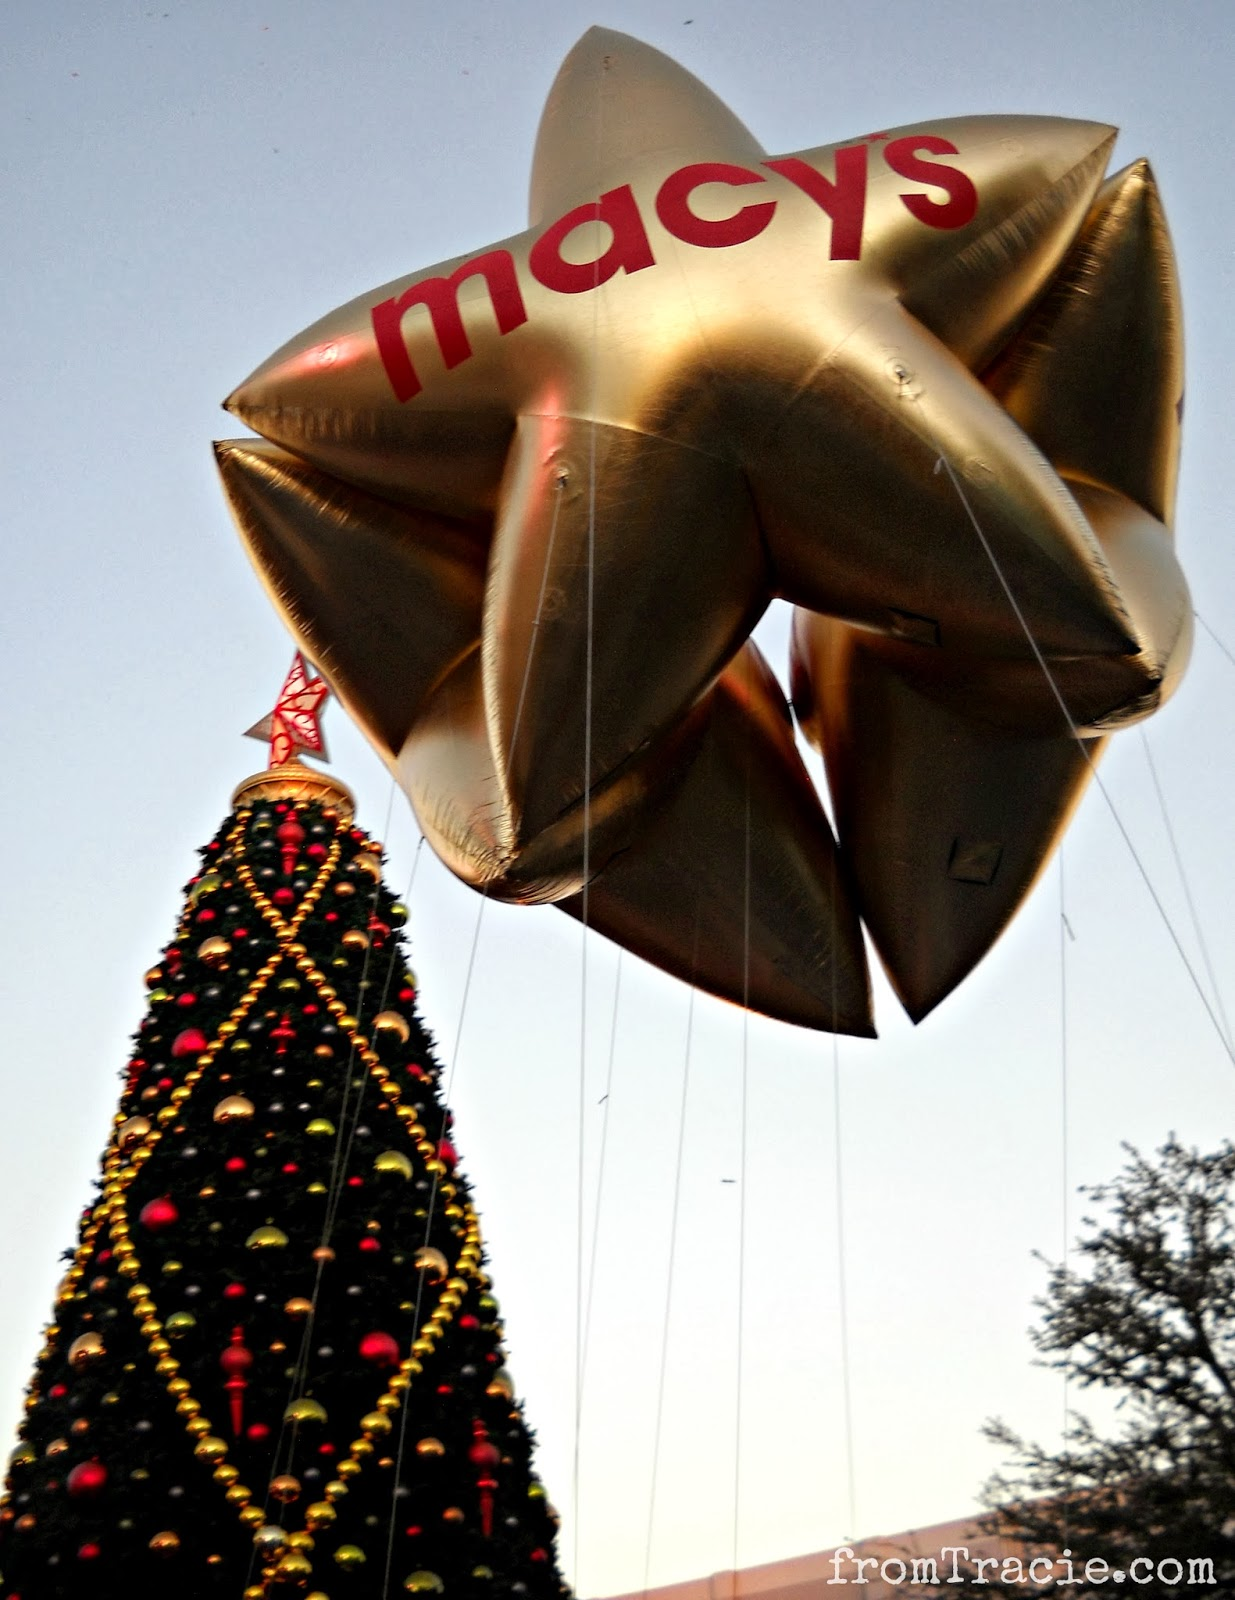 Macy's Gold Star Balloon